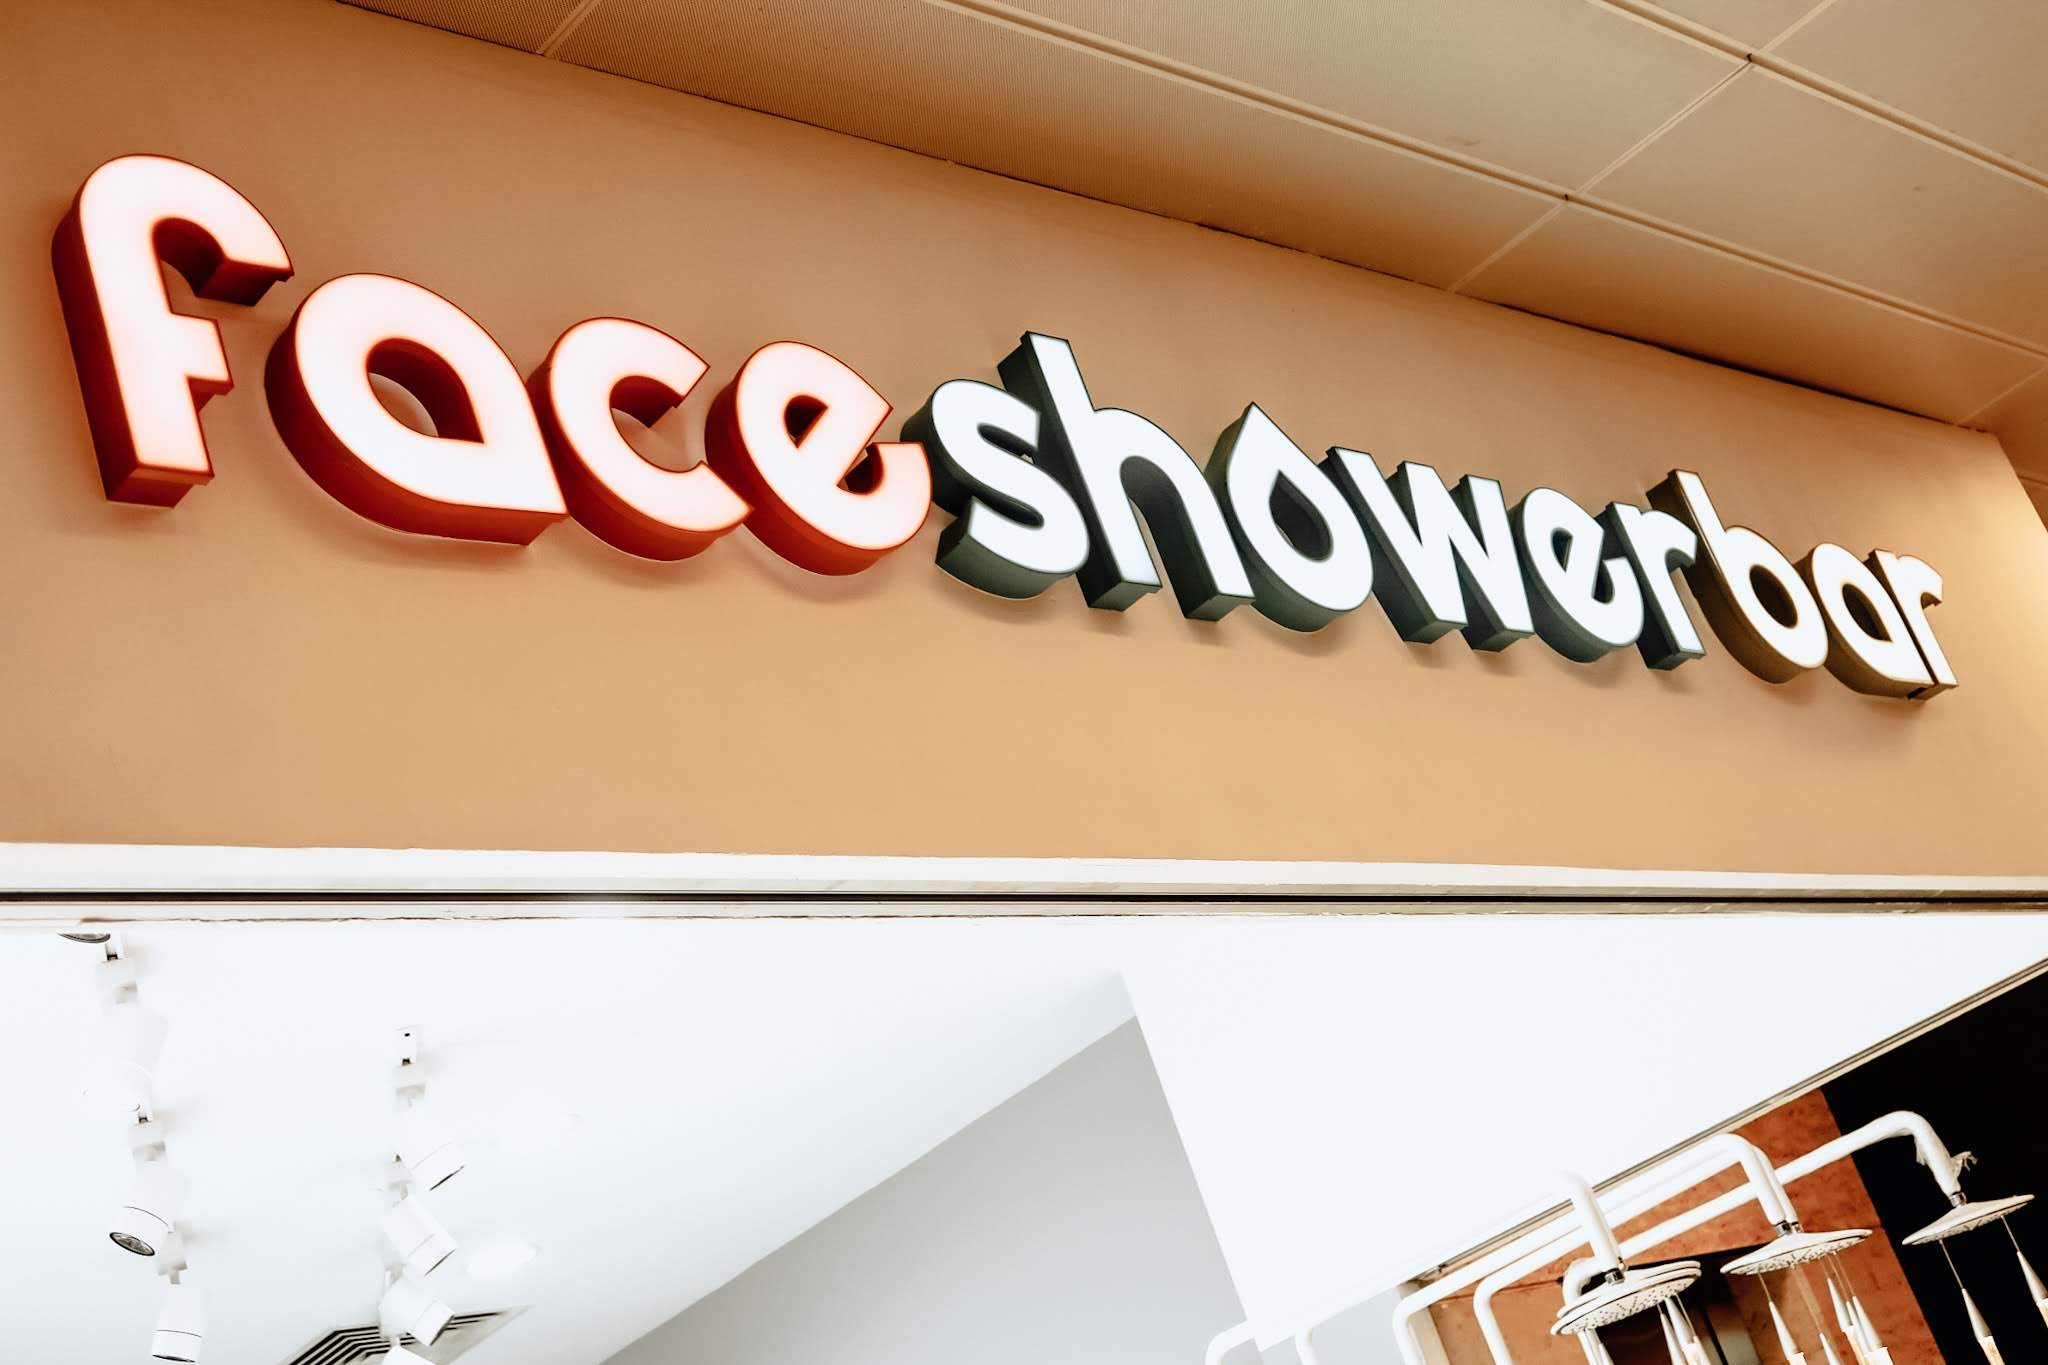 The exterior store front of Face Shower Bar.